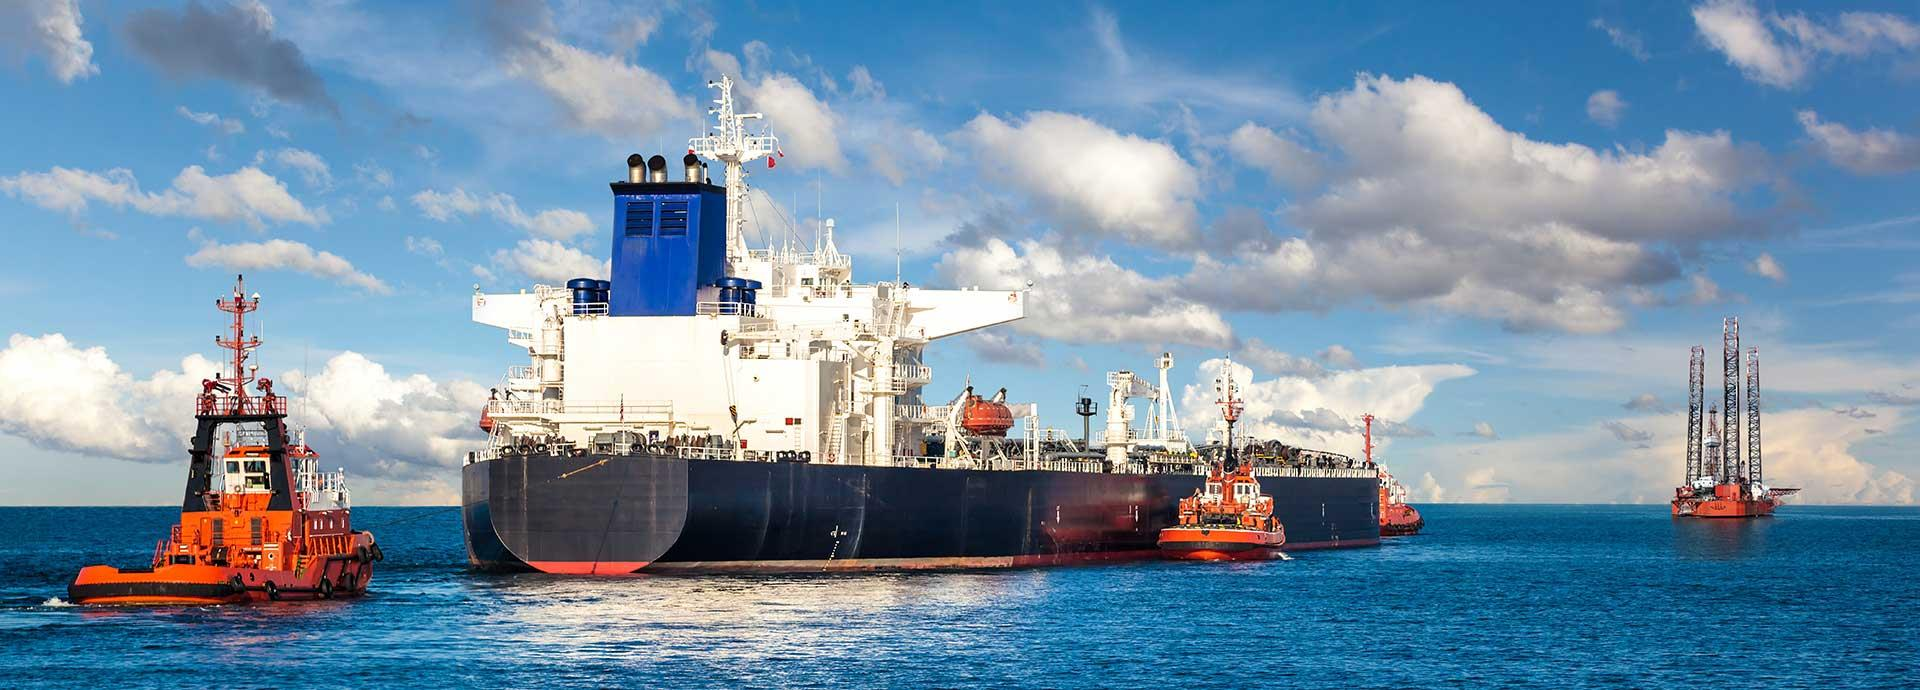 The green energy of the future could come from tankers